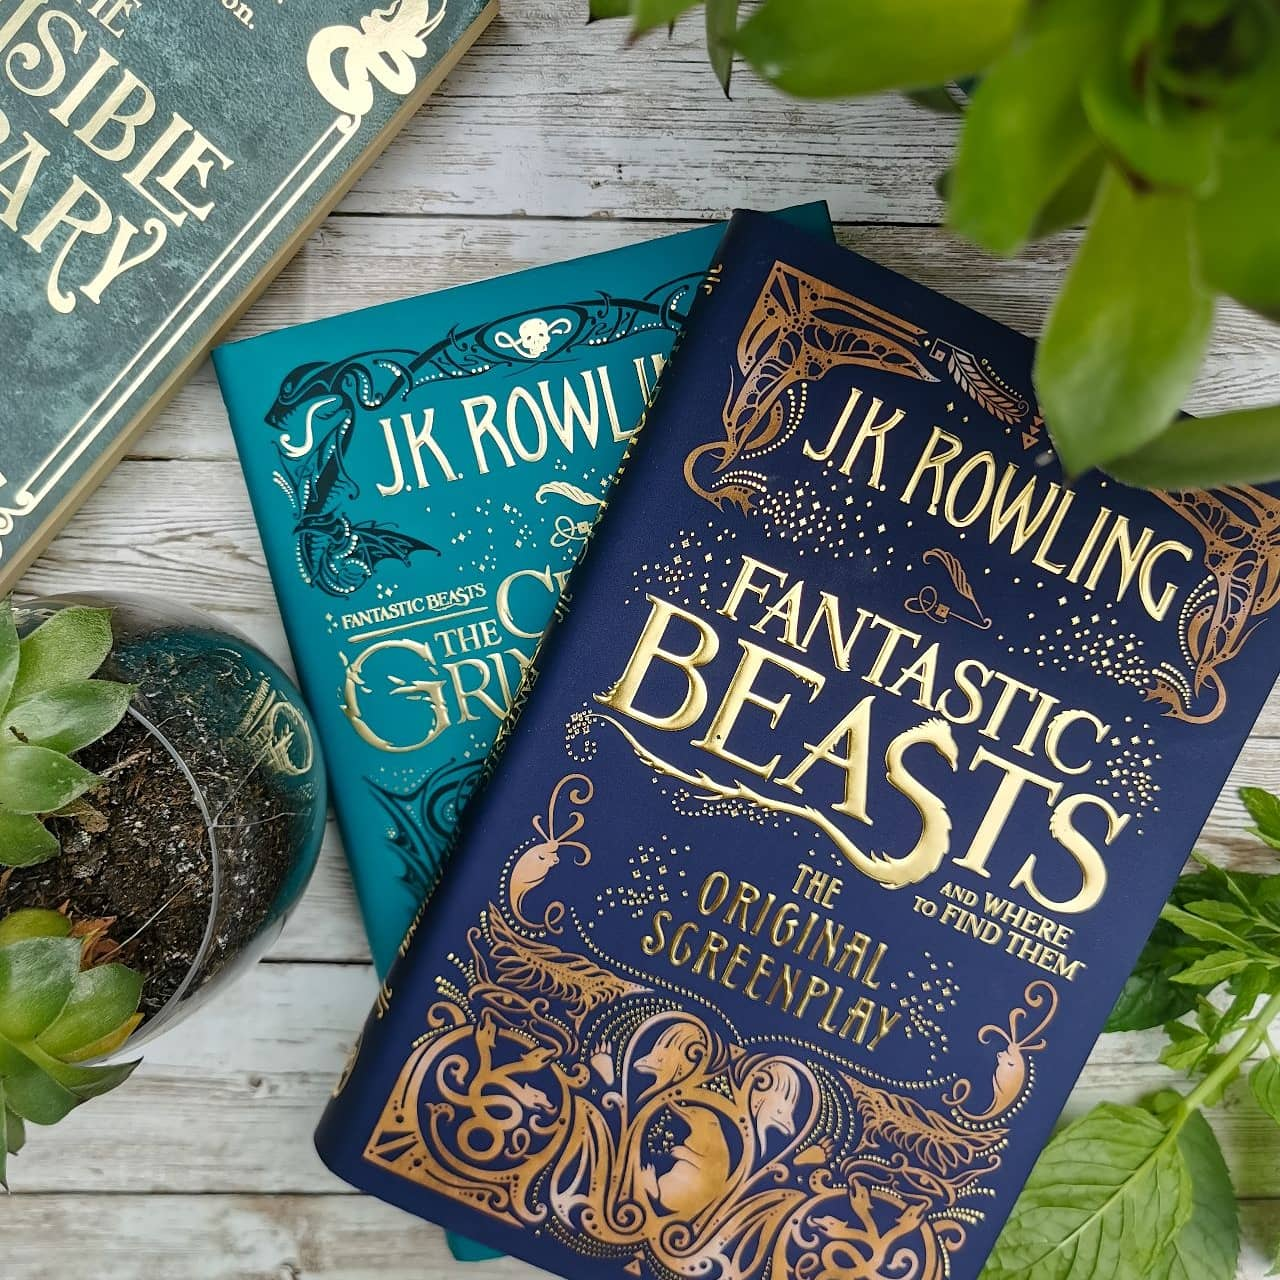 Fantastic Beasts screenplay books with plants